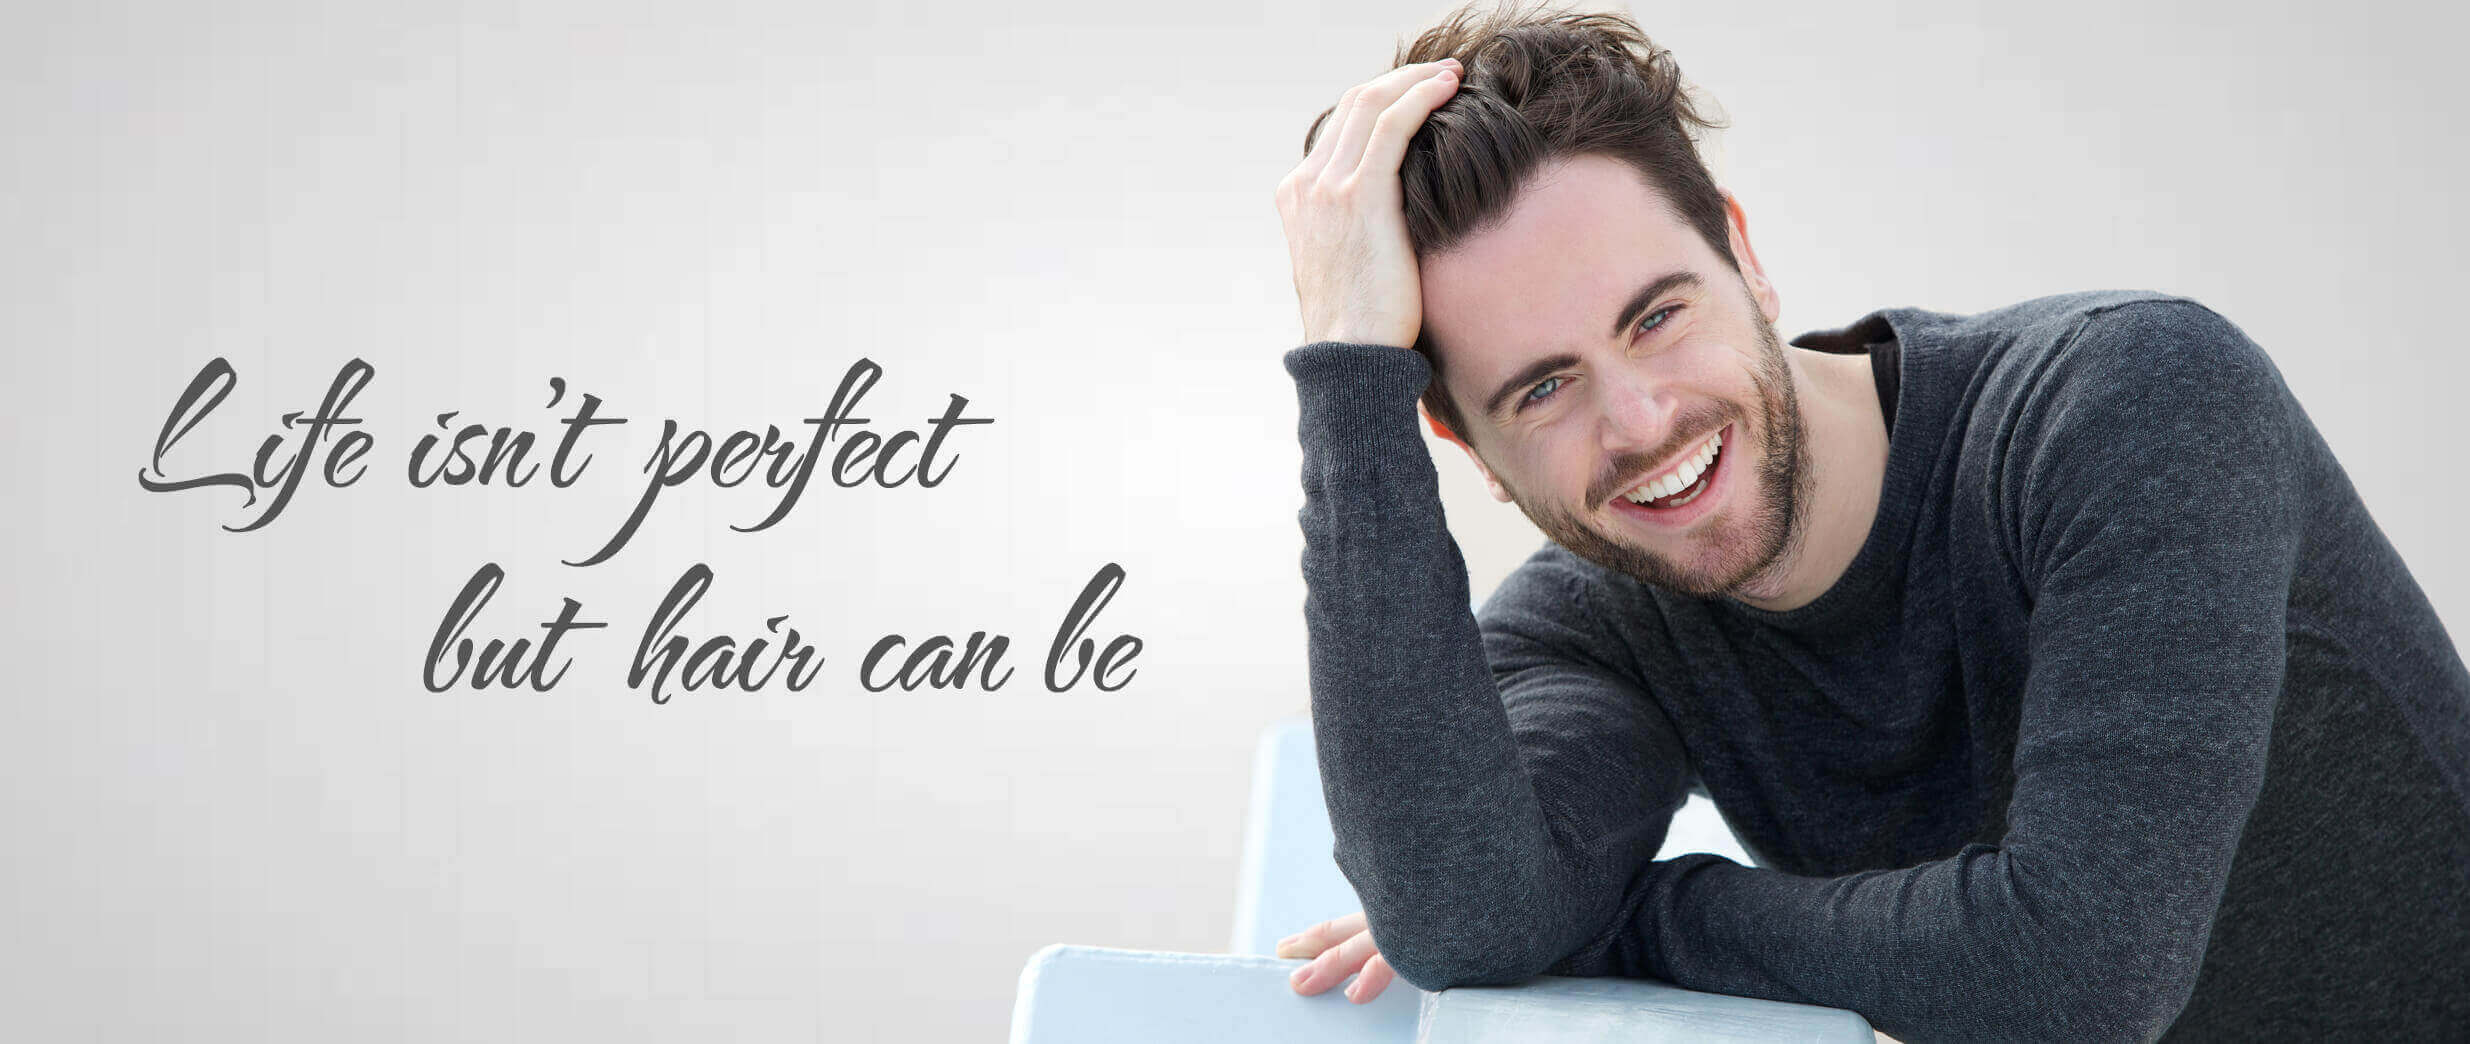 Hair Transplant in Chandigarh 16 - What To Consider For A Hair Transplant In Chandigarh?